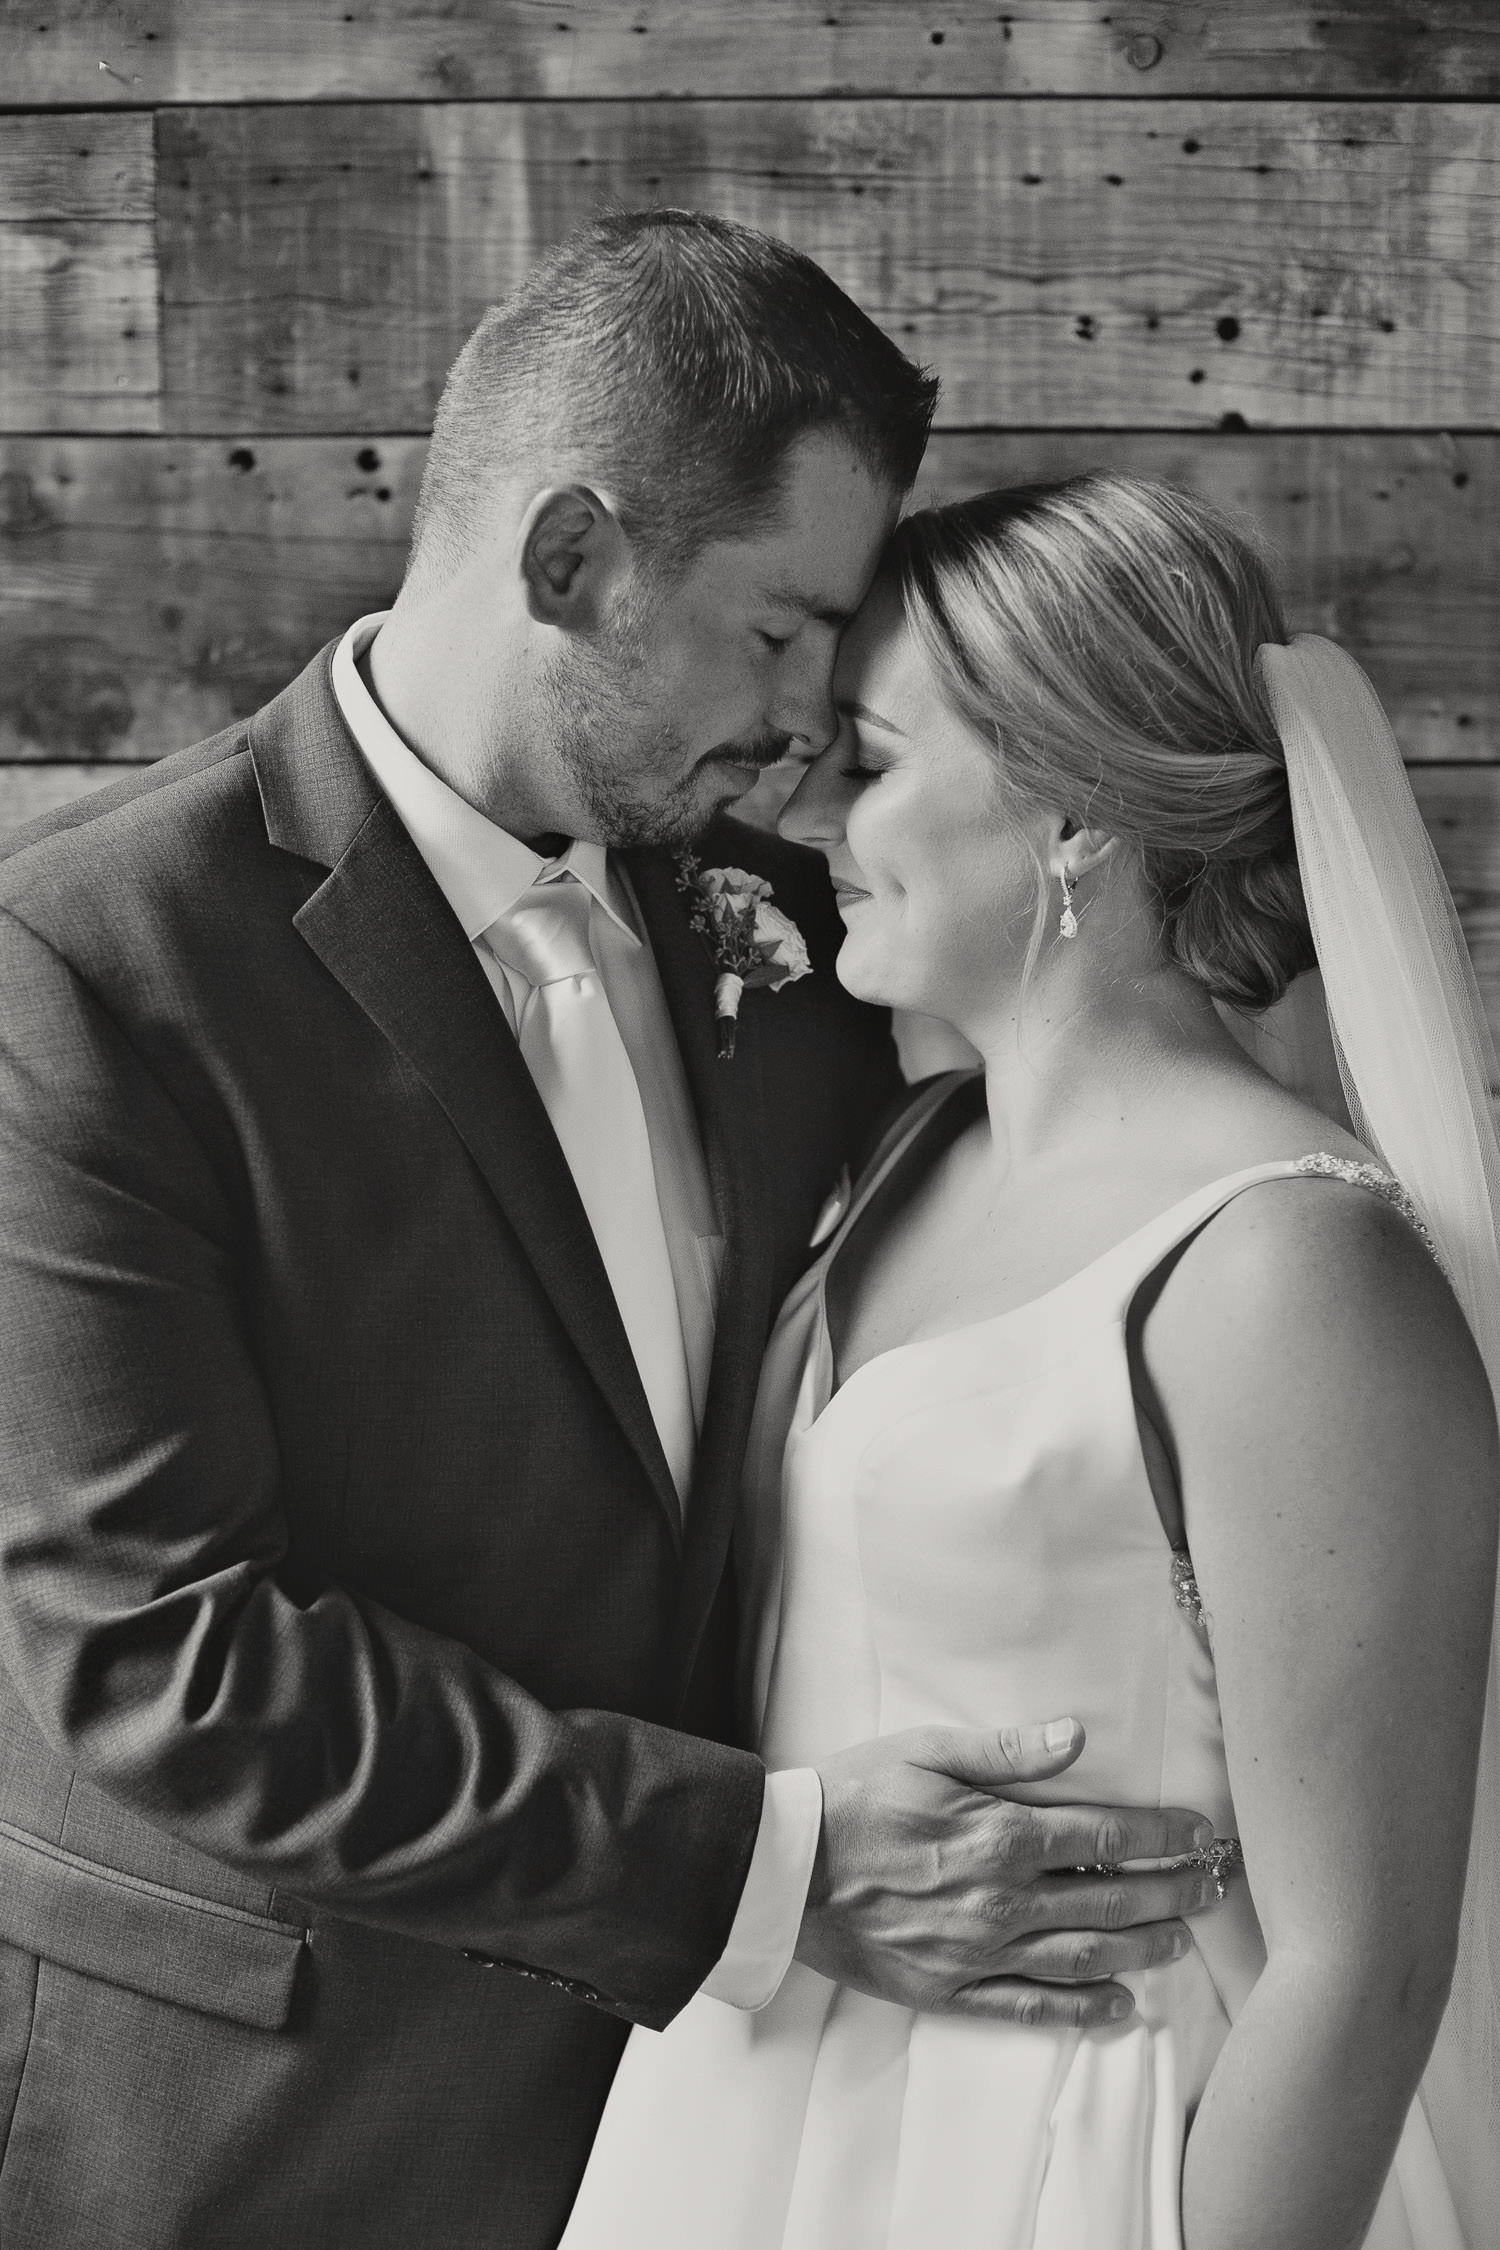 bride and groom embrace at their intimate Canmore wedding captured by Tara Whittaker Photography